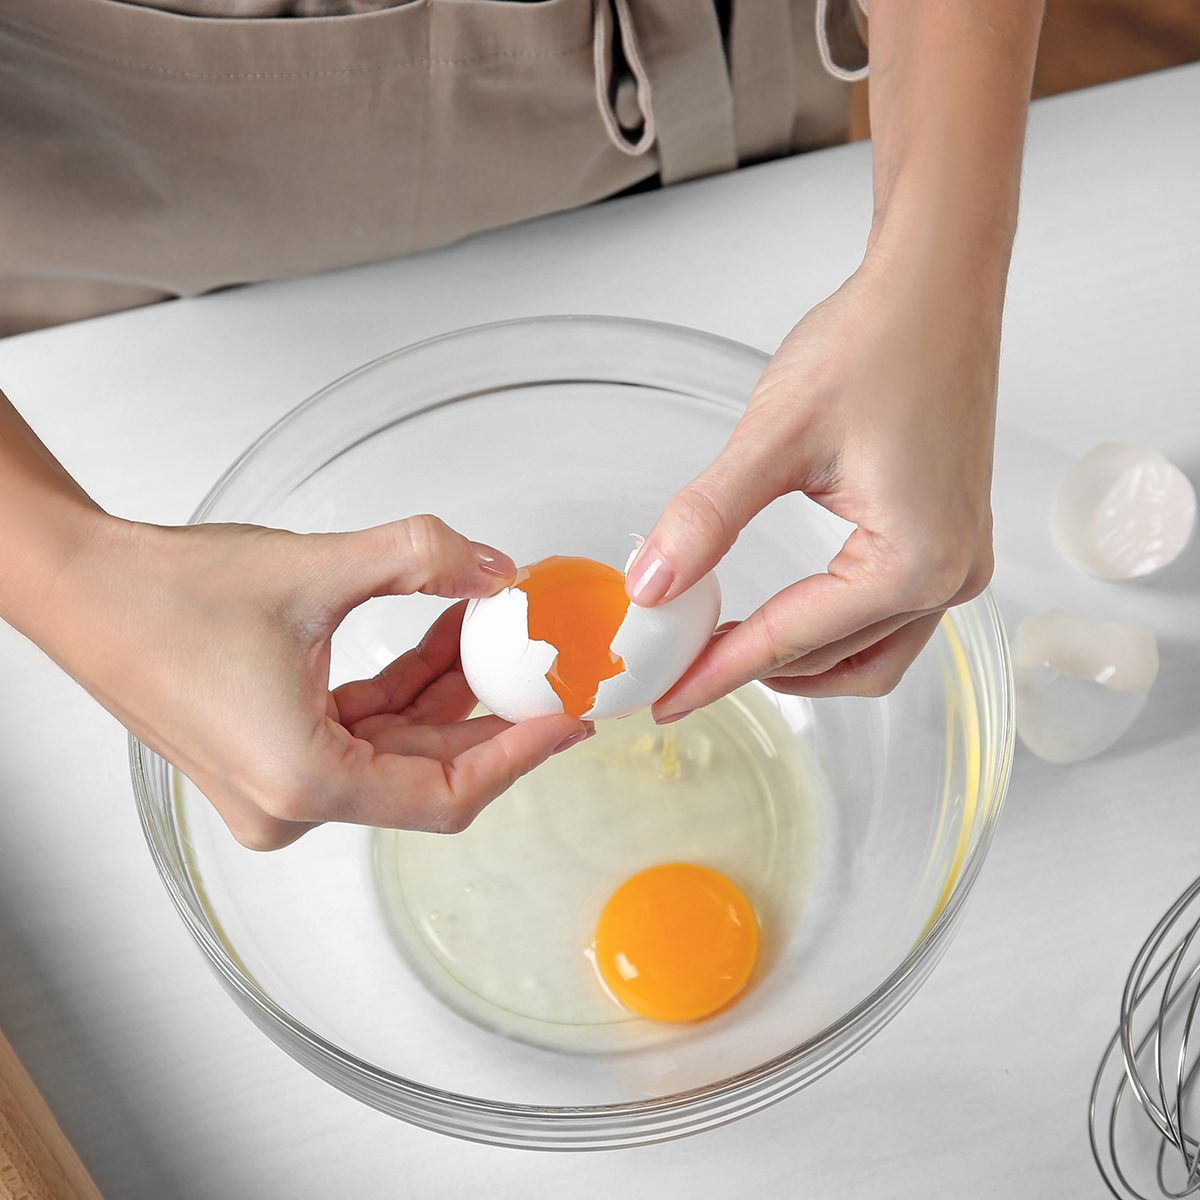 Woman cracking eggs into glass bowl